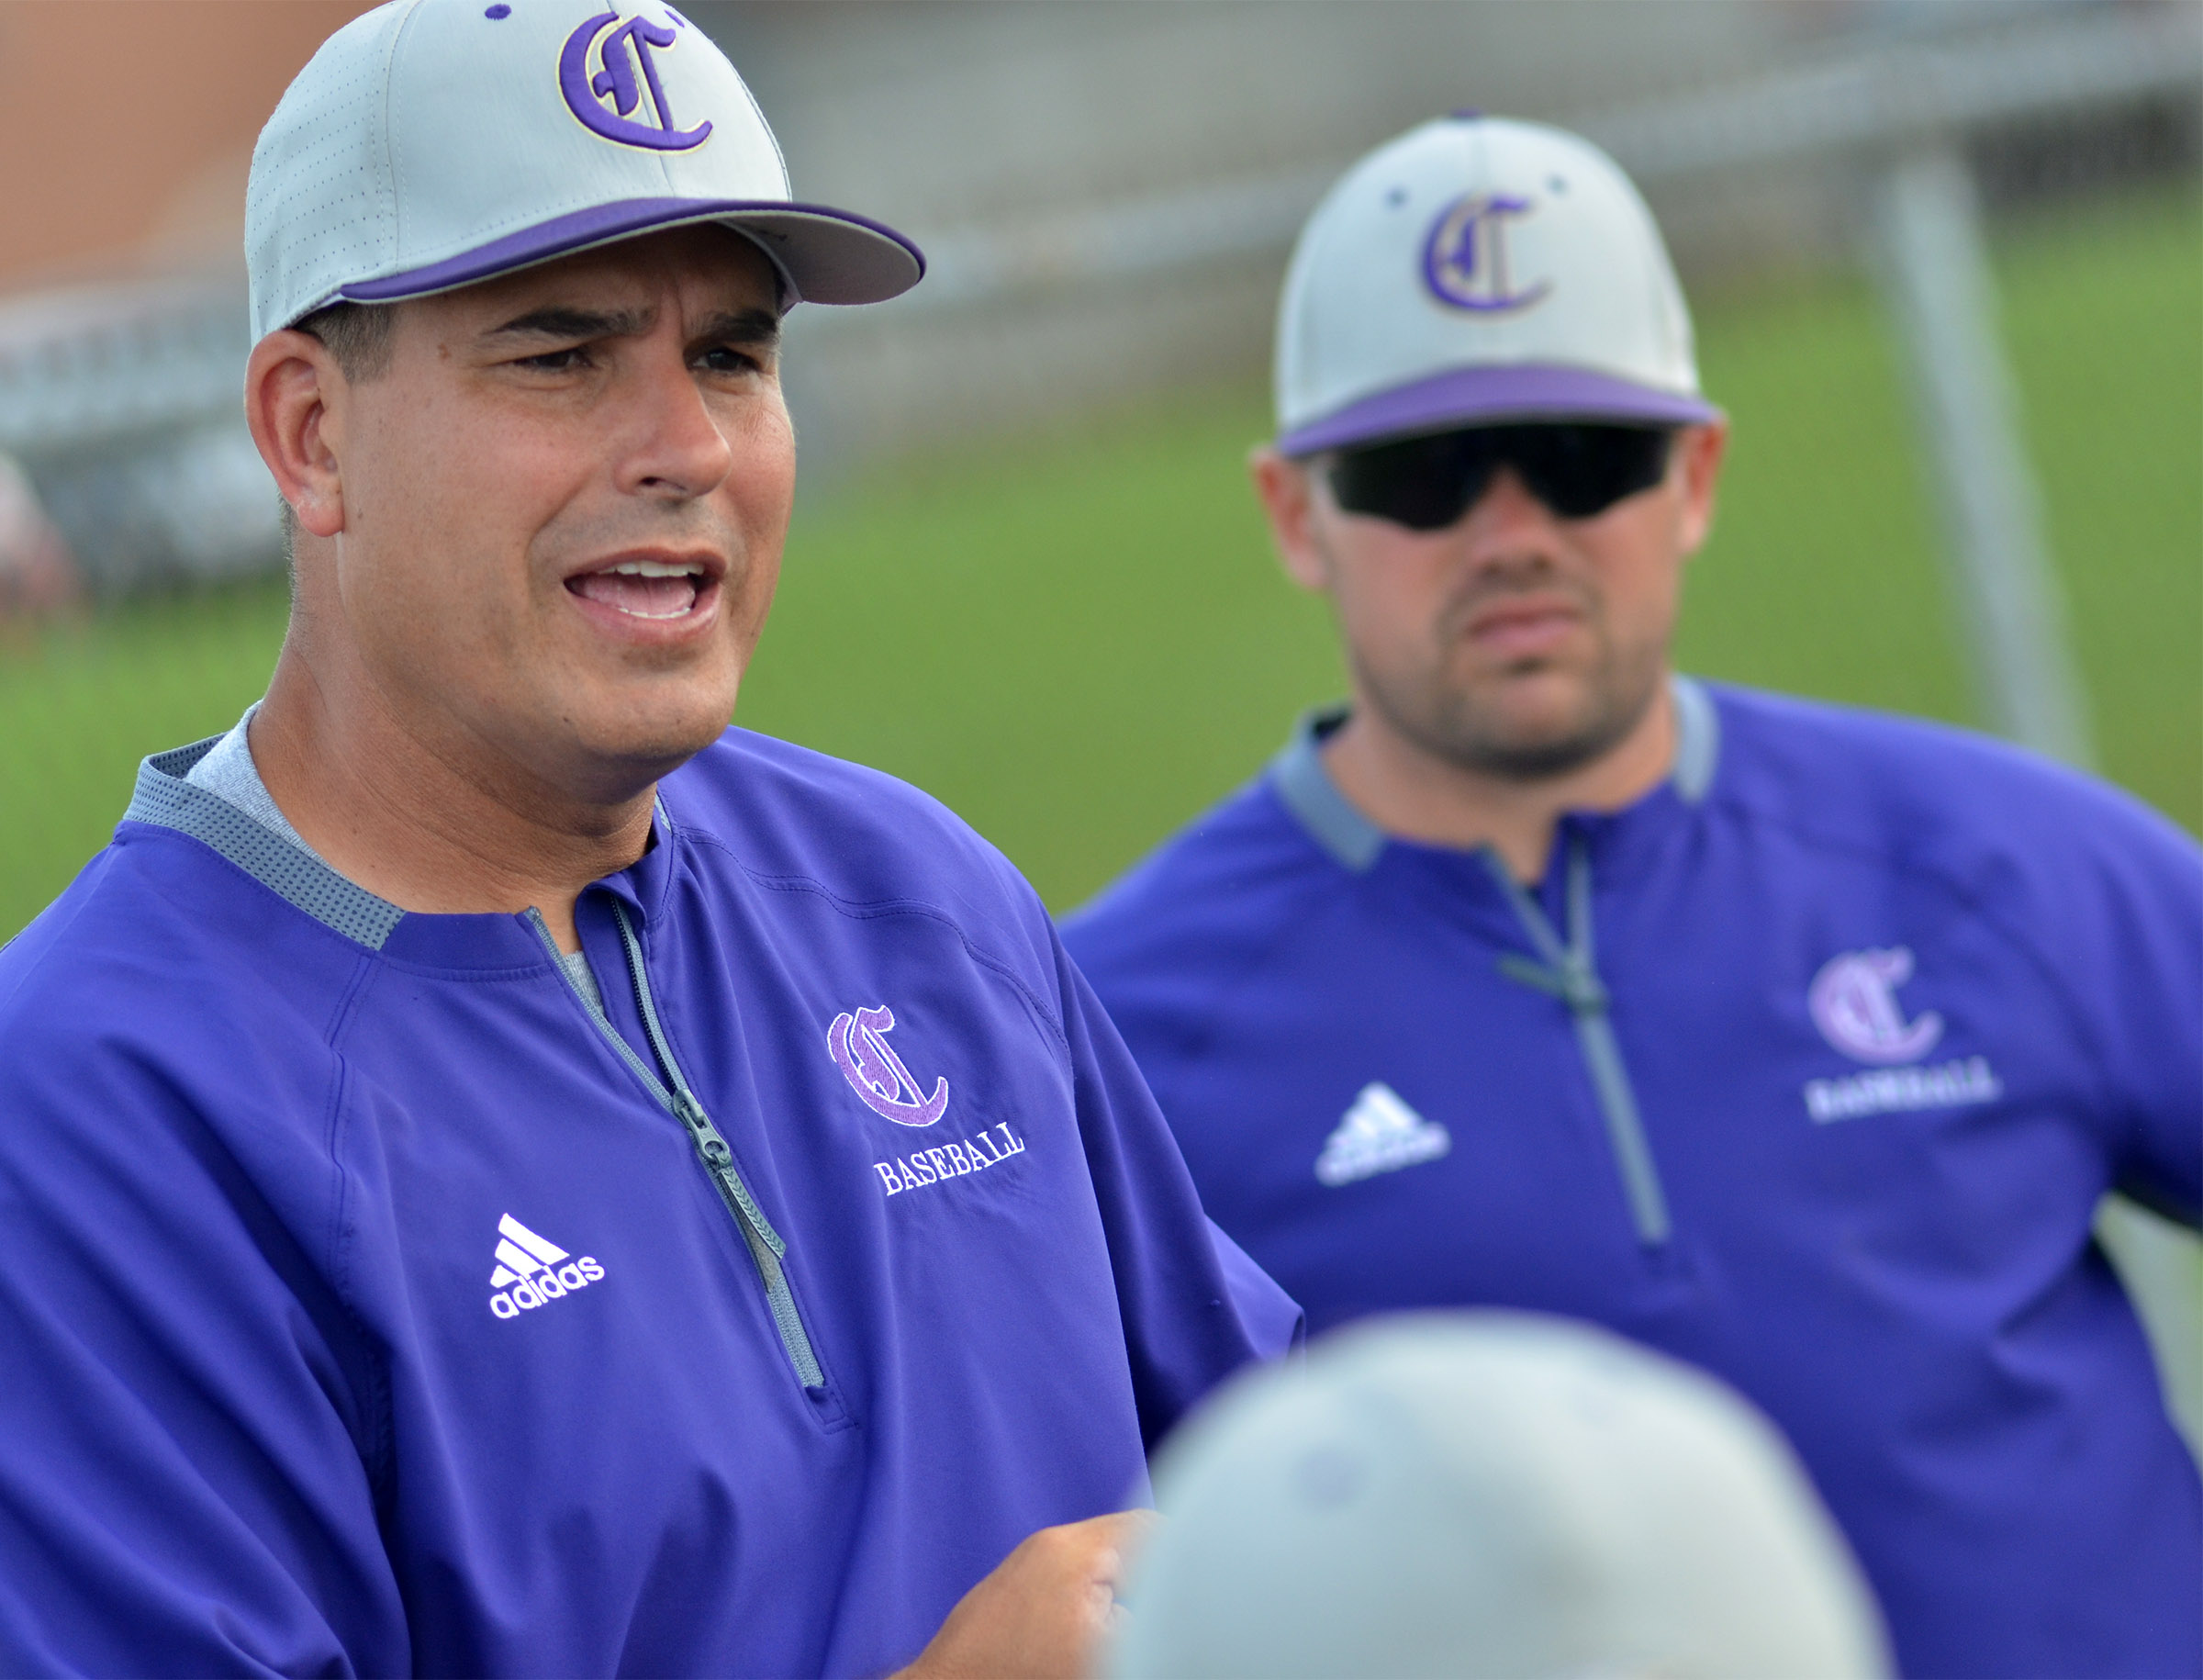 Blake Milby, at right, a former CHS baseball player and assistant coach, has been named head coach. He succeeds Kirby Smith, at left, who coached for 11 years and is now superintendent.